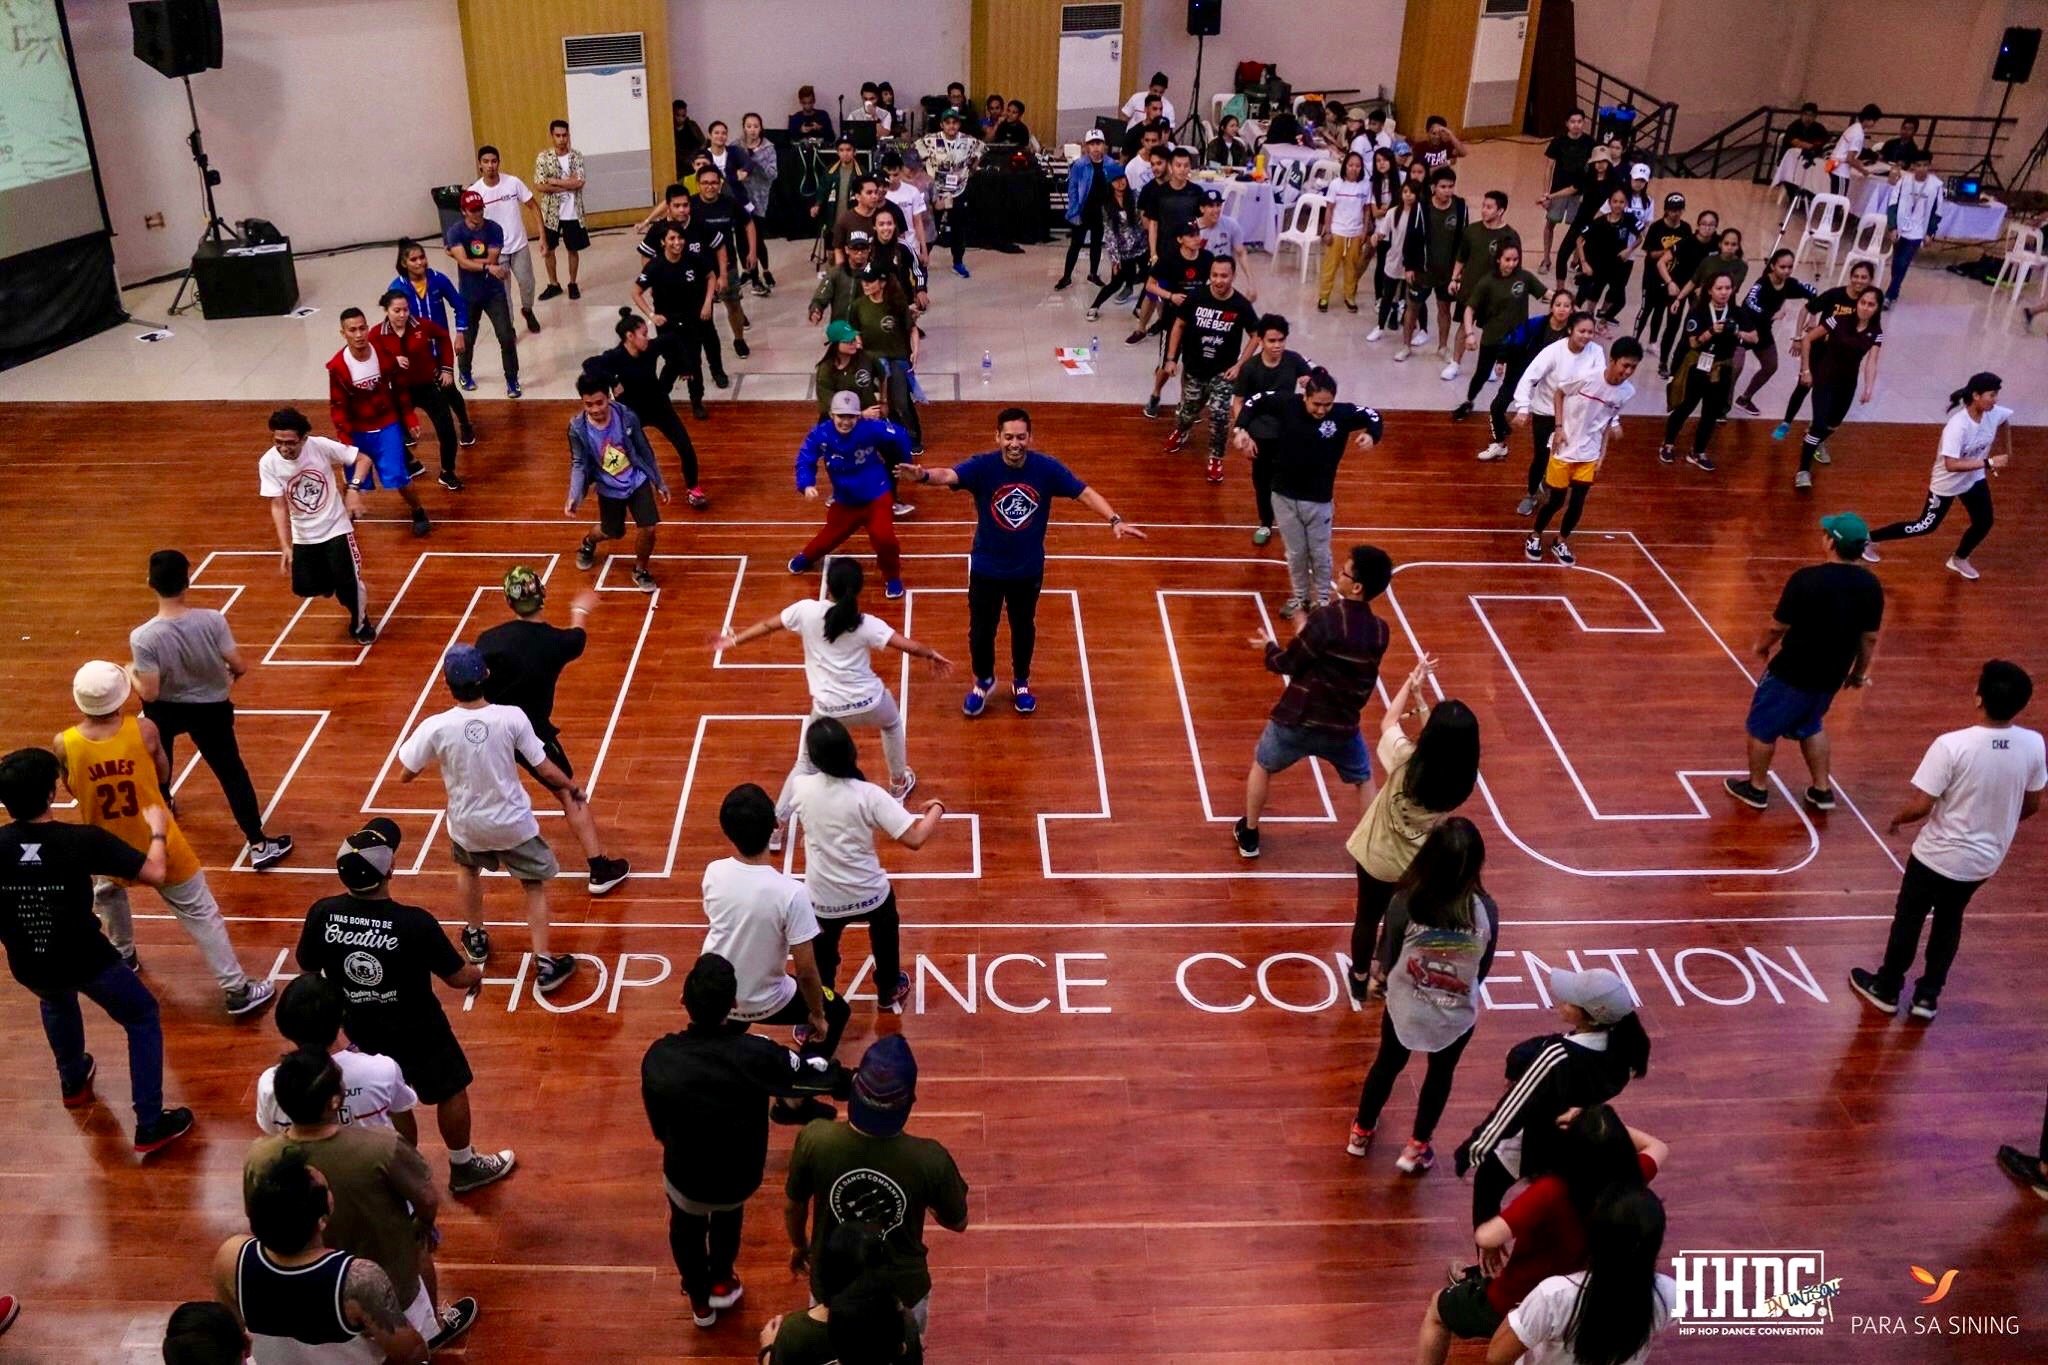 Teaching for HIP HOP DANCE CONVENTION in the Philippines